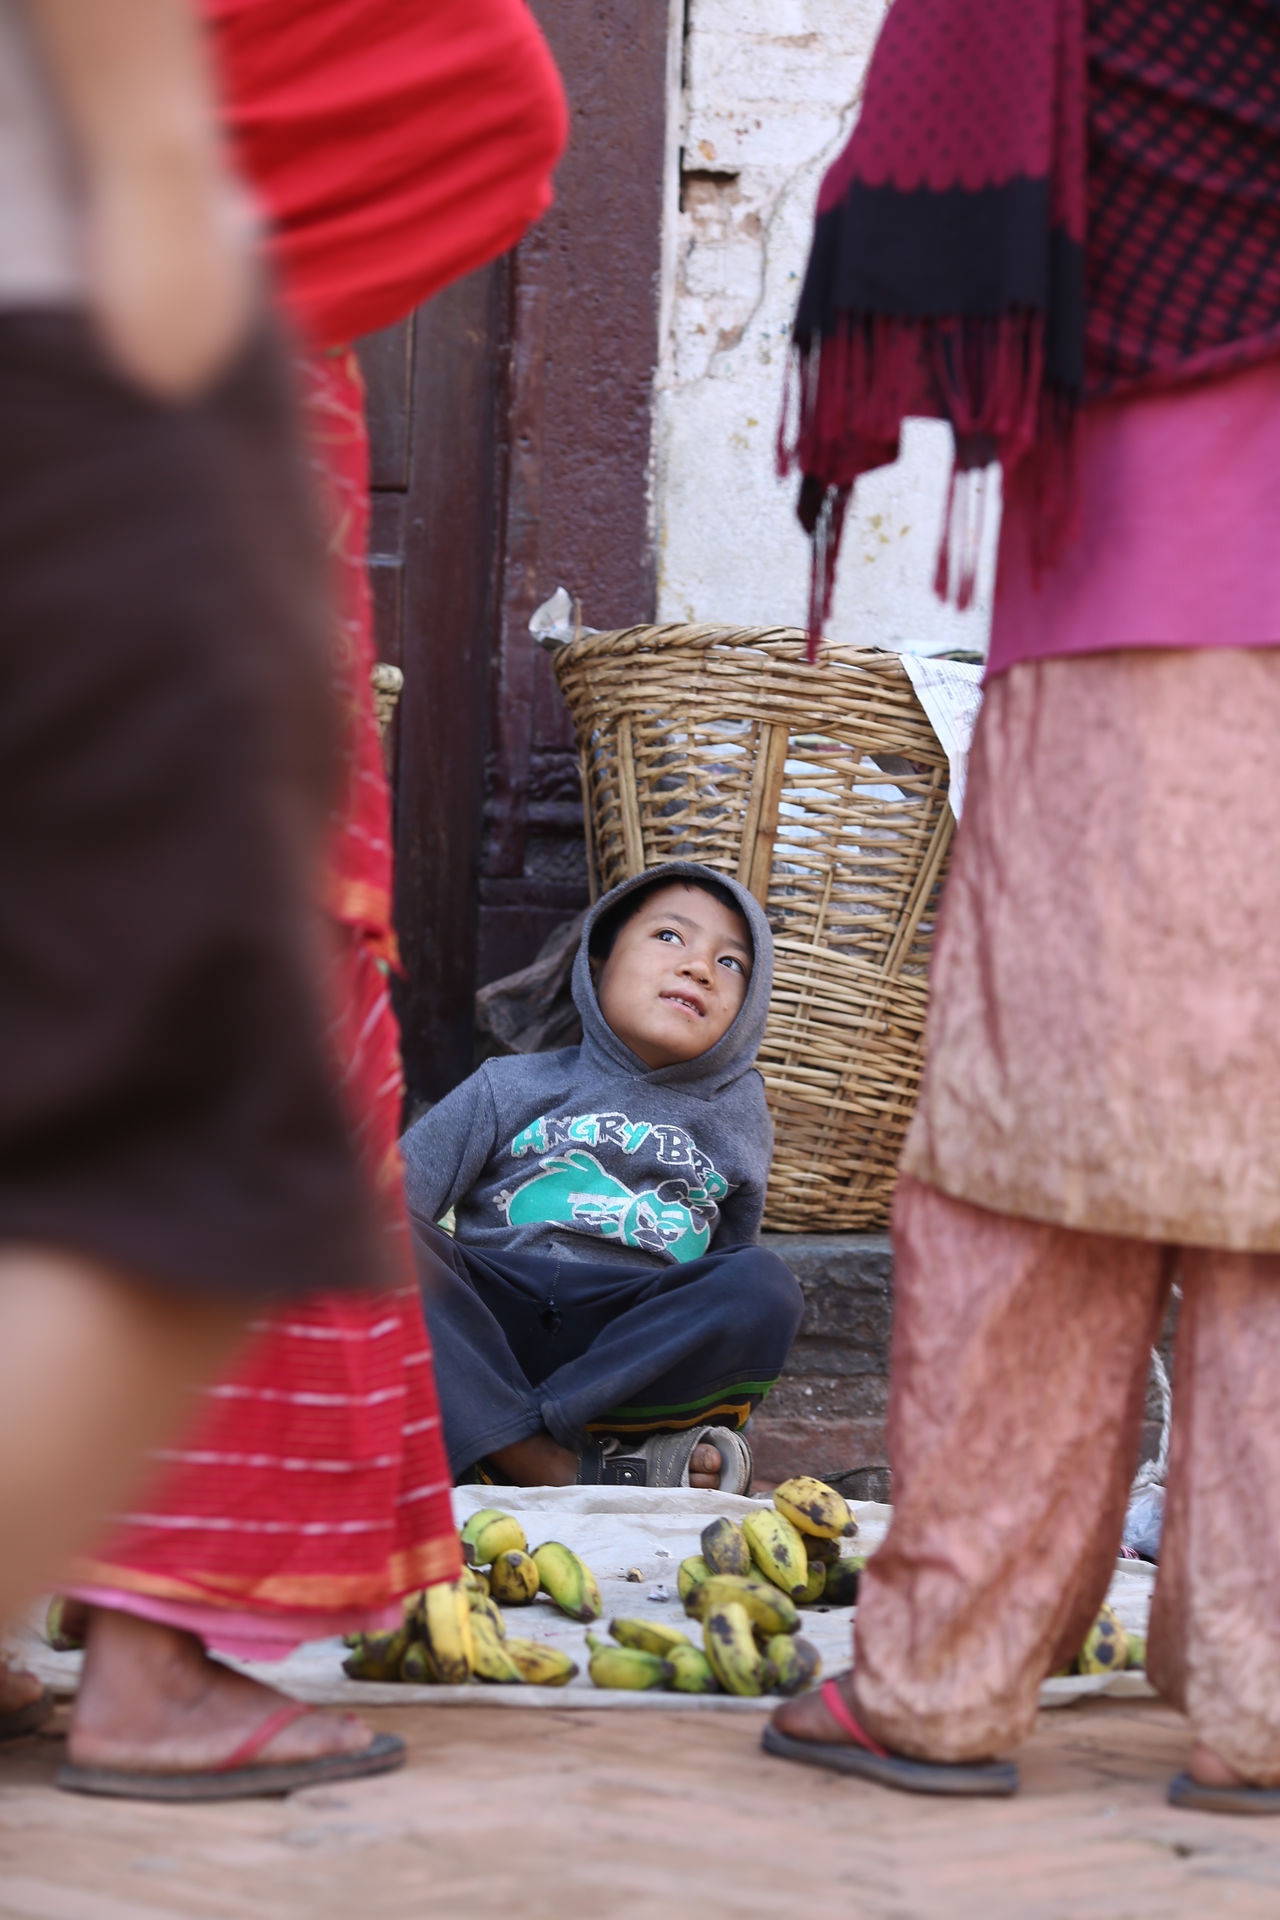 Youngest merchant Day Fruits Kid Merchant Nepal Outdoors Travel Youngest Merchant